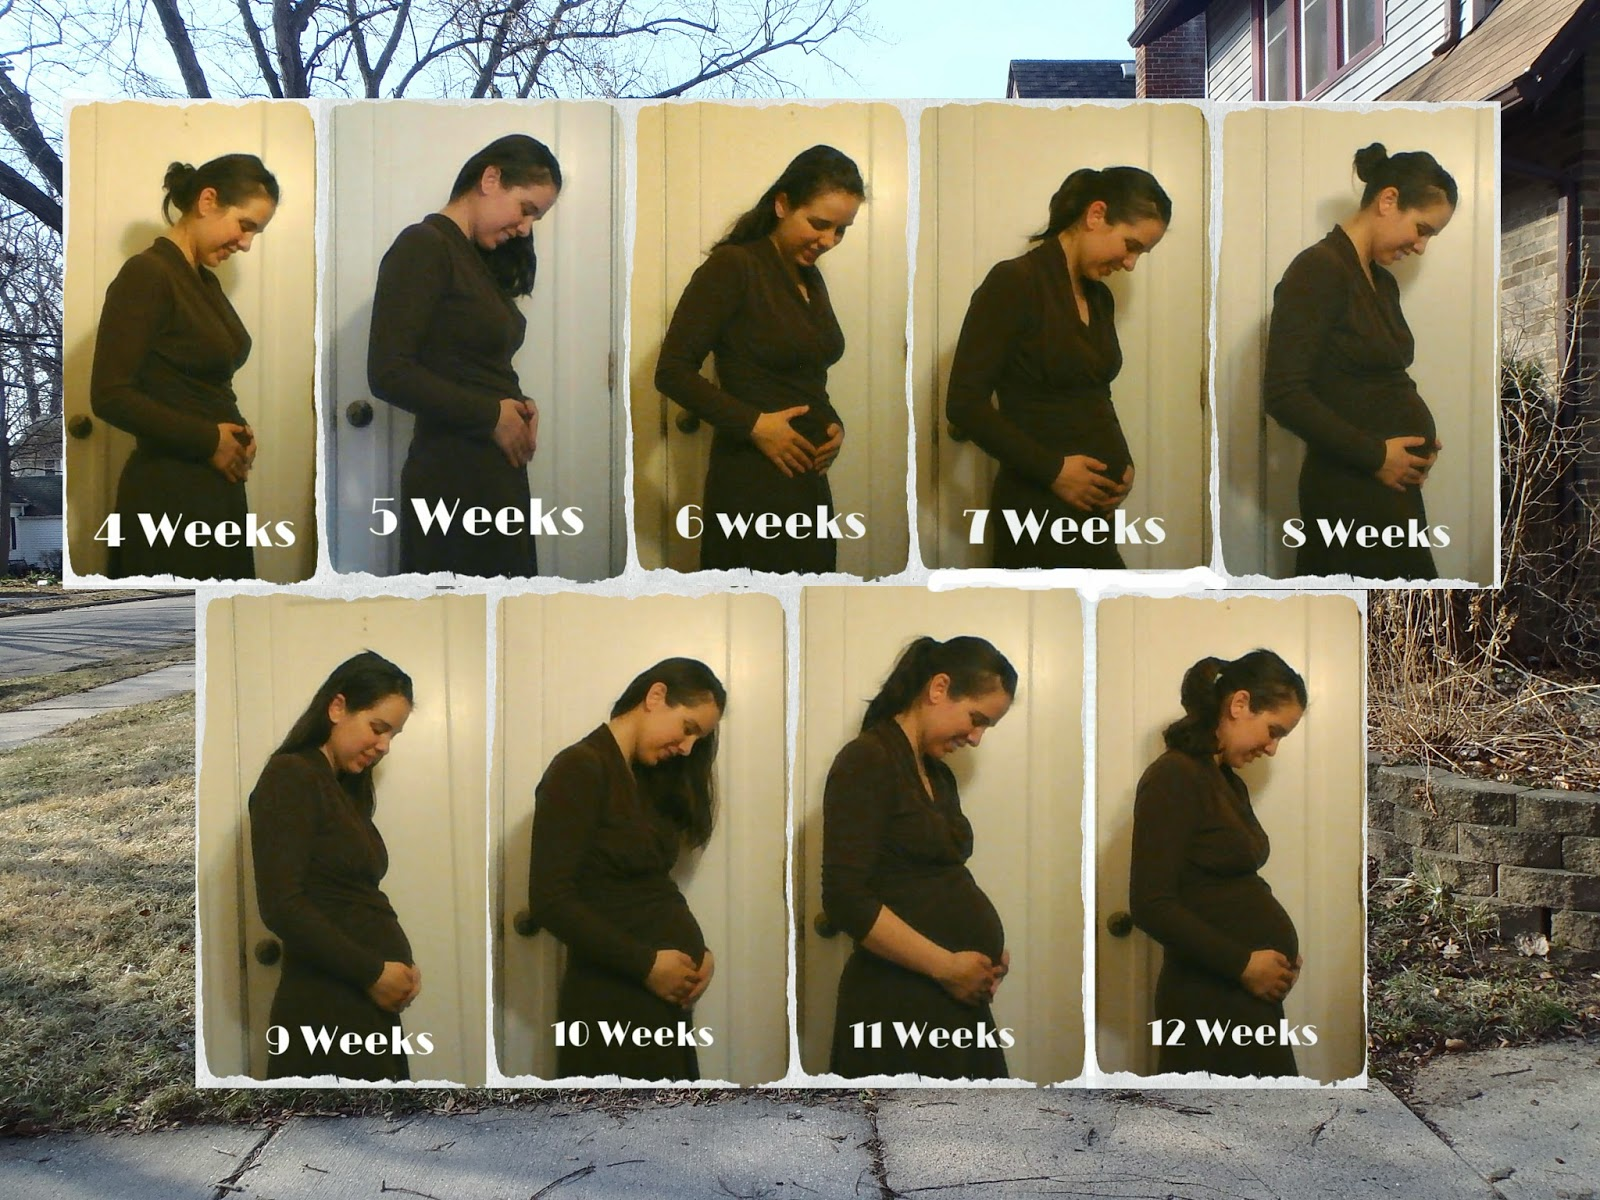 Someday I'll Sleep Autism Blogs: 12 Week Picture Progression